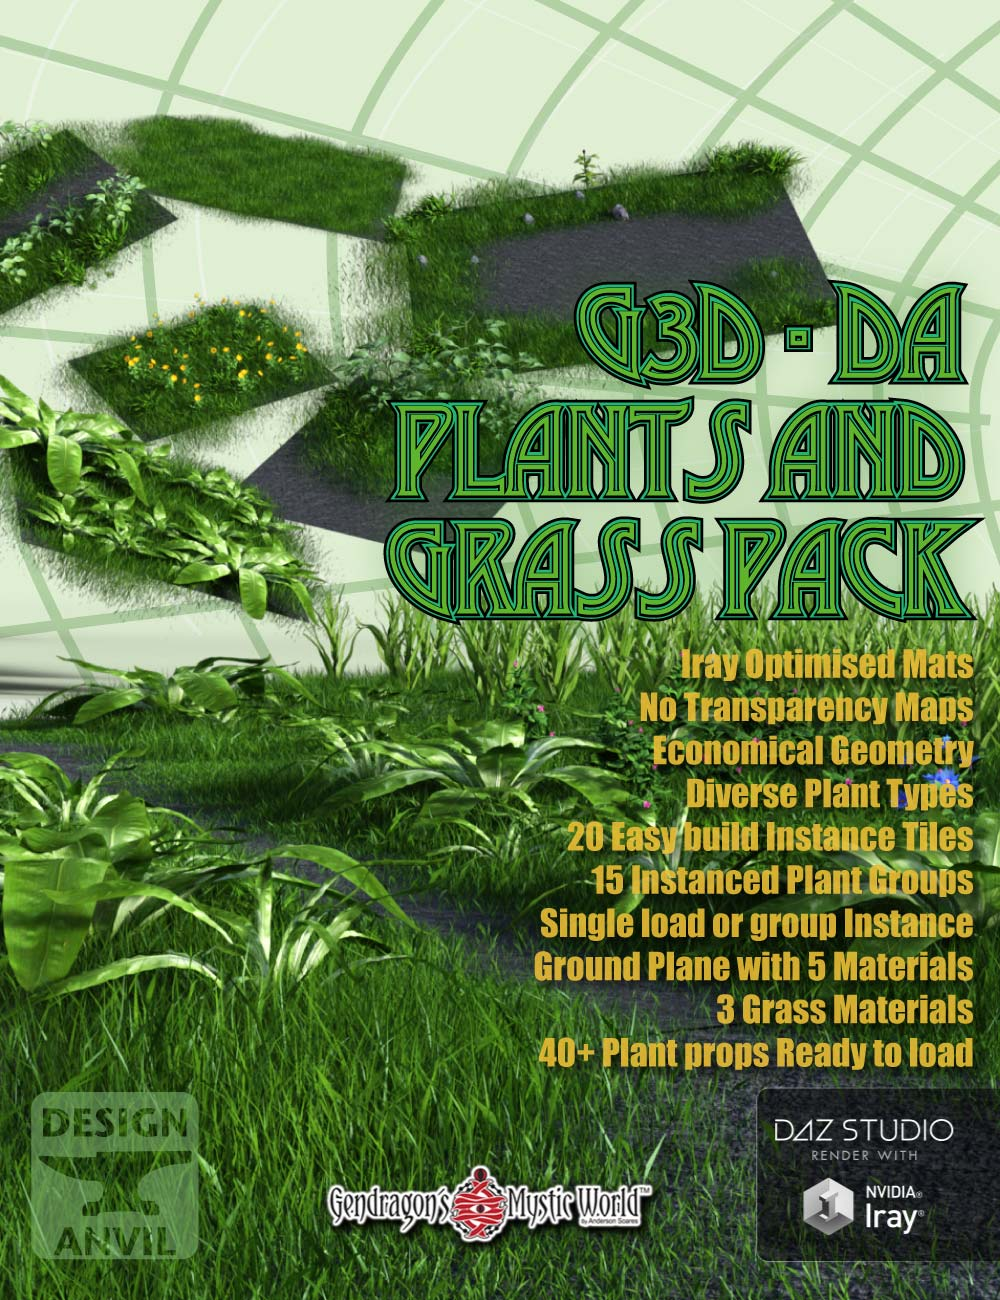 G3D-DA Grass and Plant Pack by: Design AnvilGendragon3D, 3D Models by Daz 3D